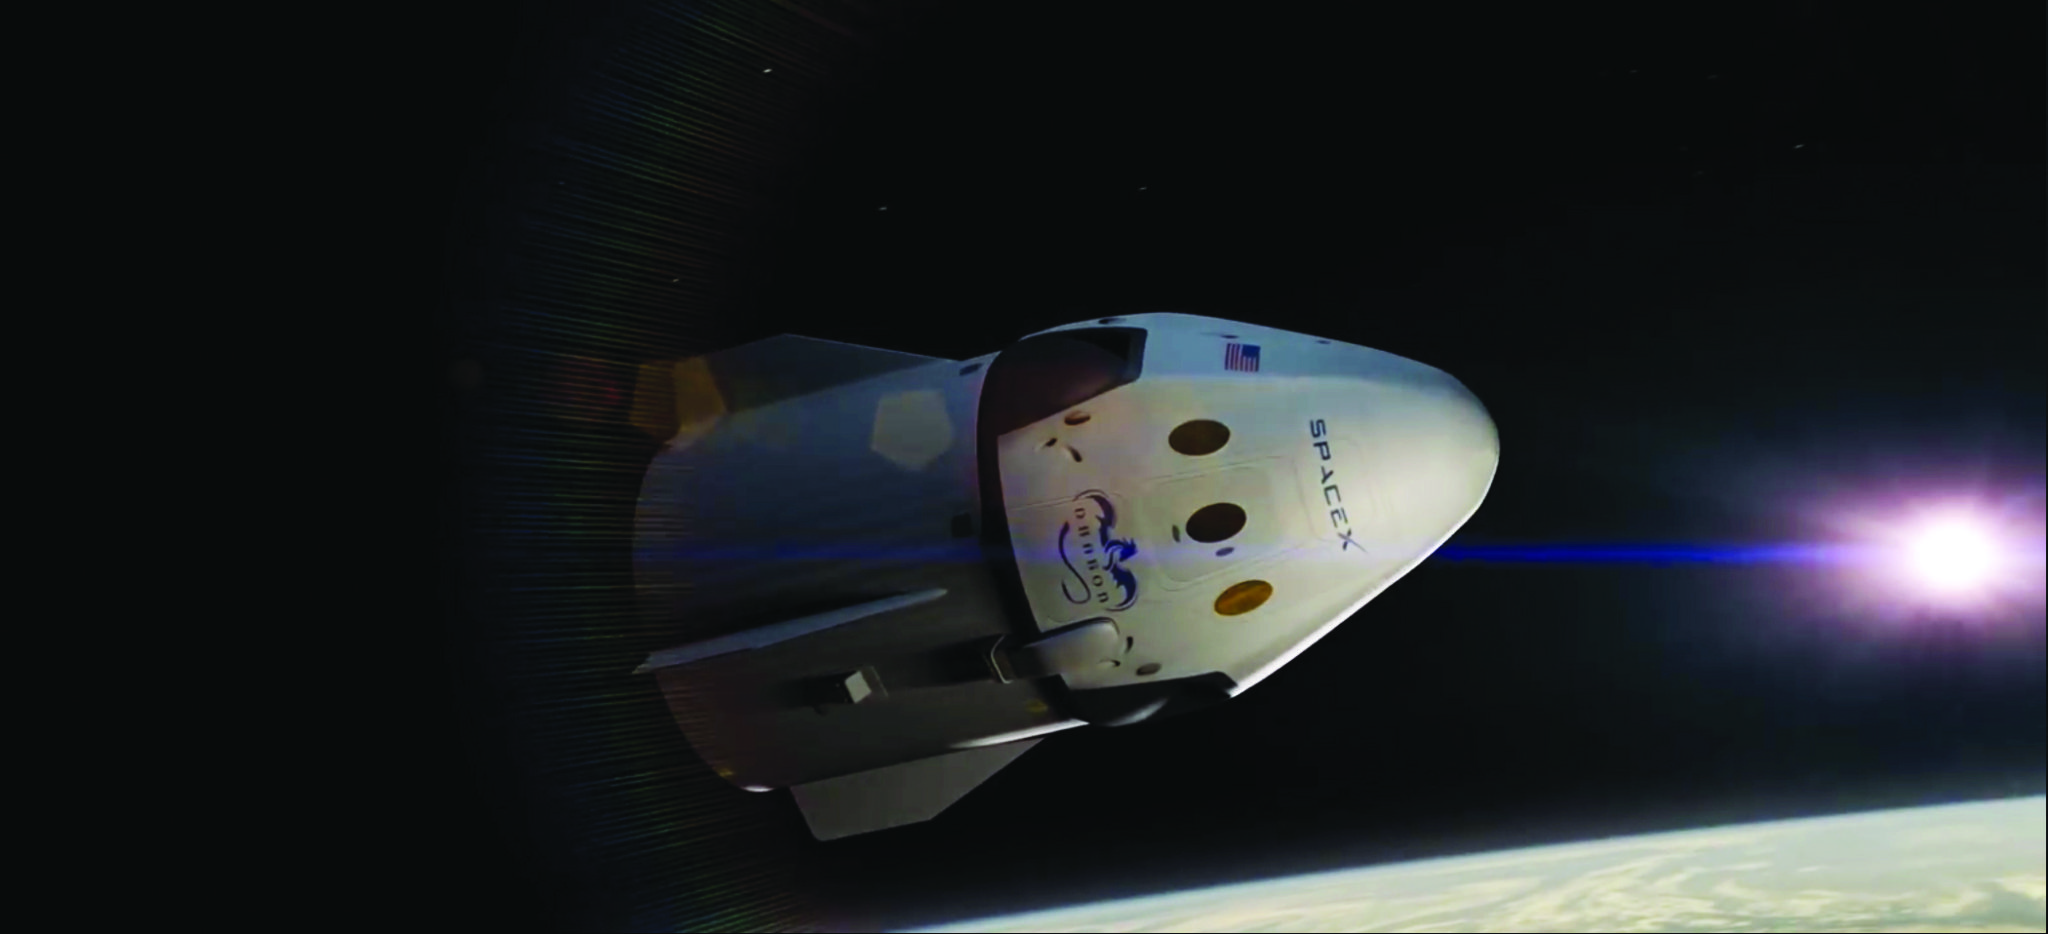 crew-dragon-completes-thermal-vacuum-tests-ahead-of-first-test-flight1